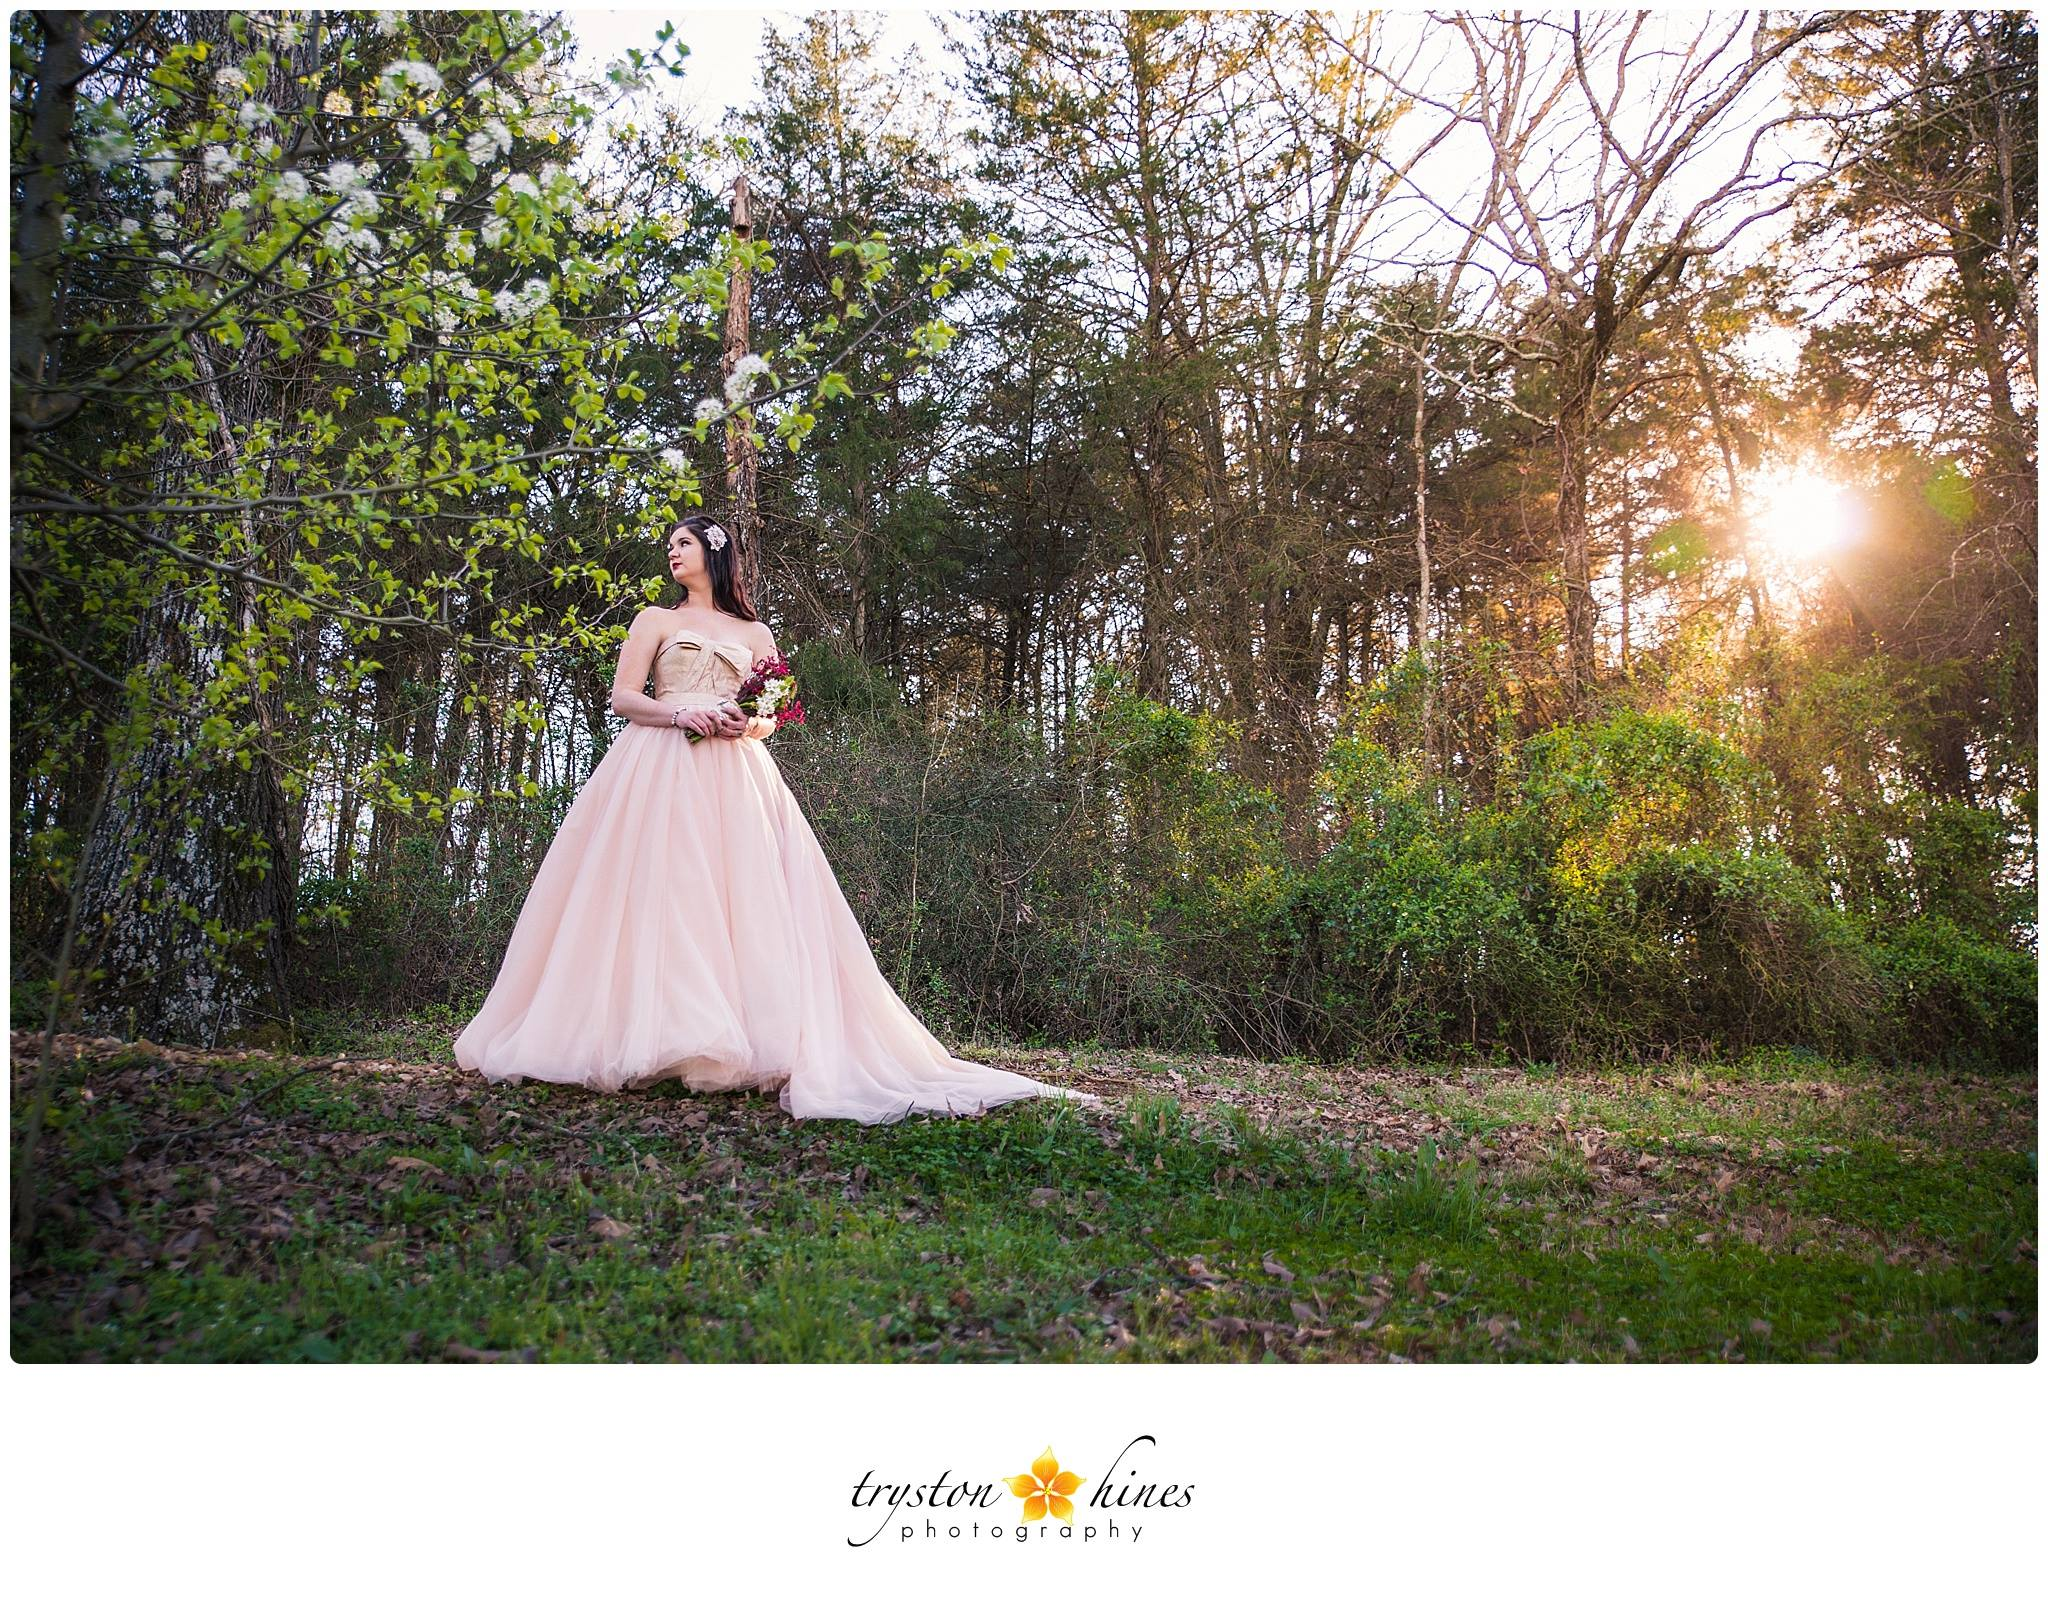 Tryston Hines Photography , from Katie + Alan's wedding at  The Barn  just two days ago. I'm blown away by this gorgeous blush + ivory stunner!